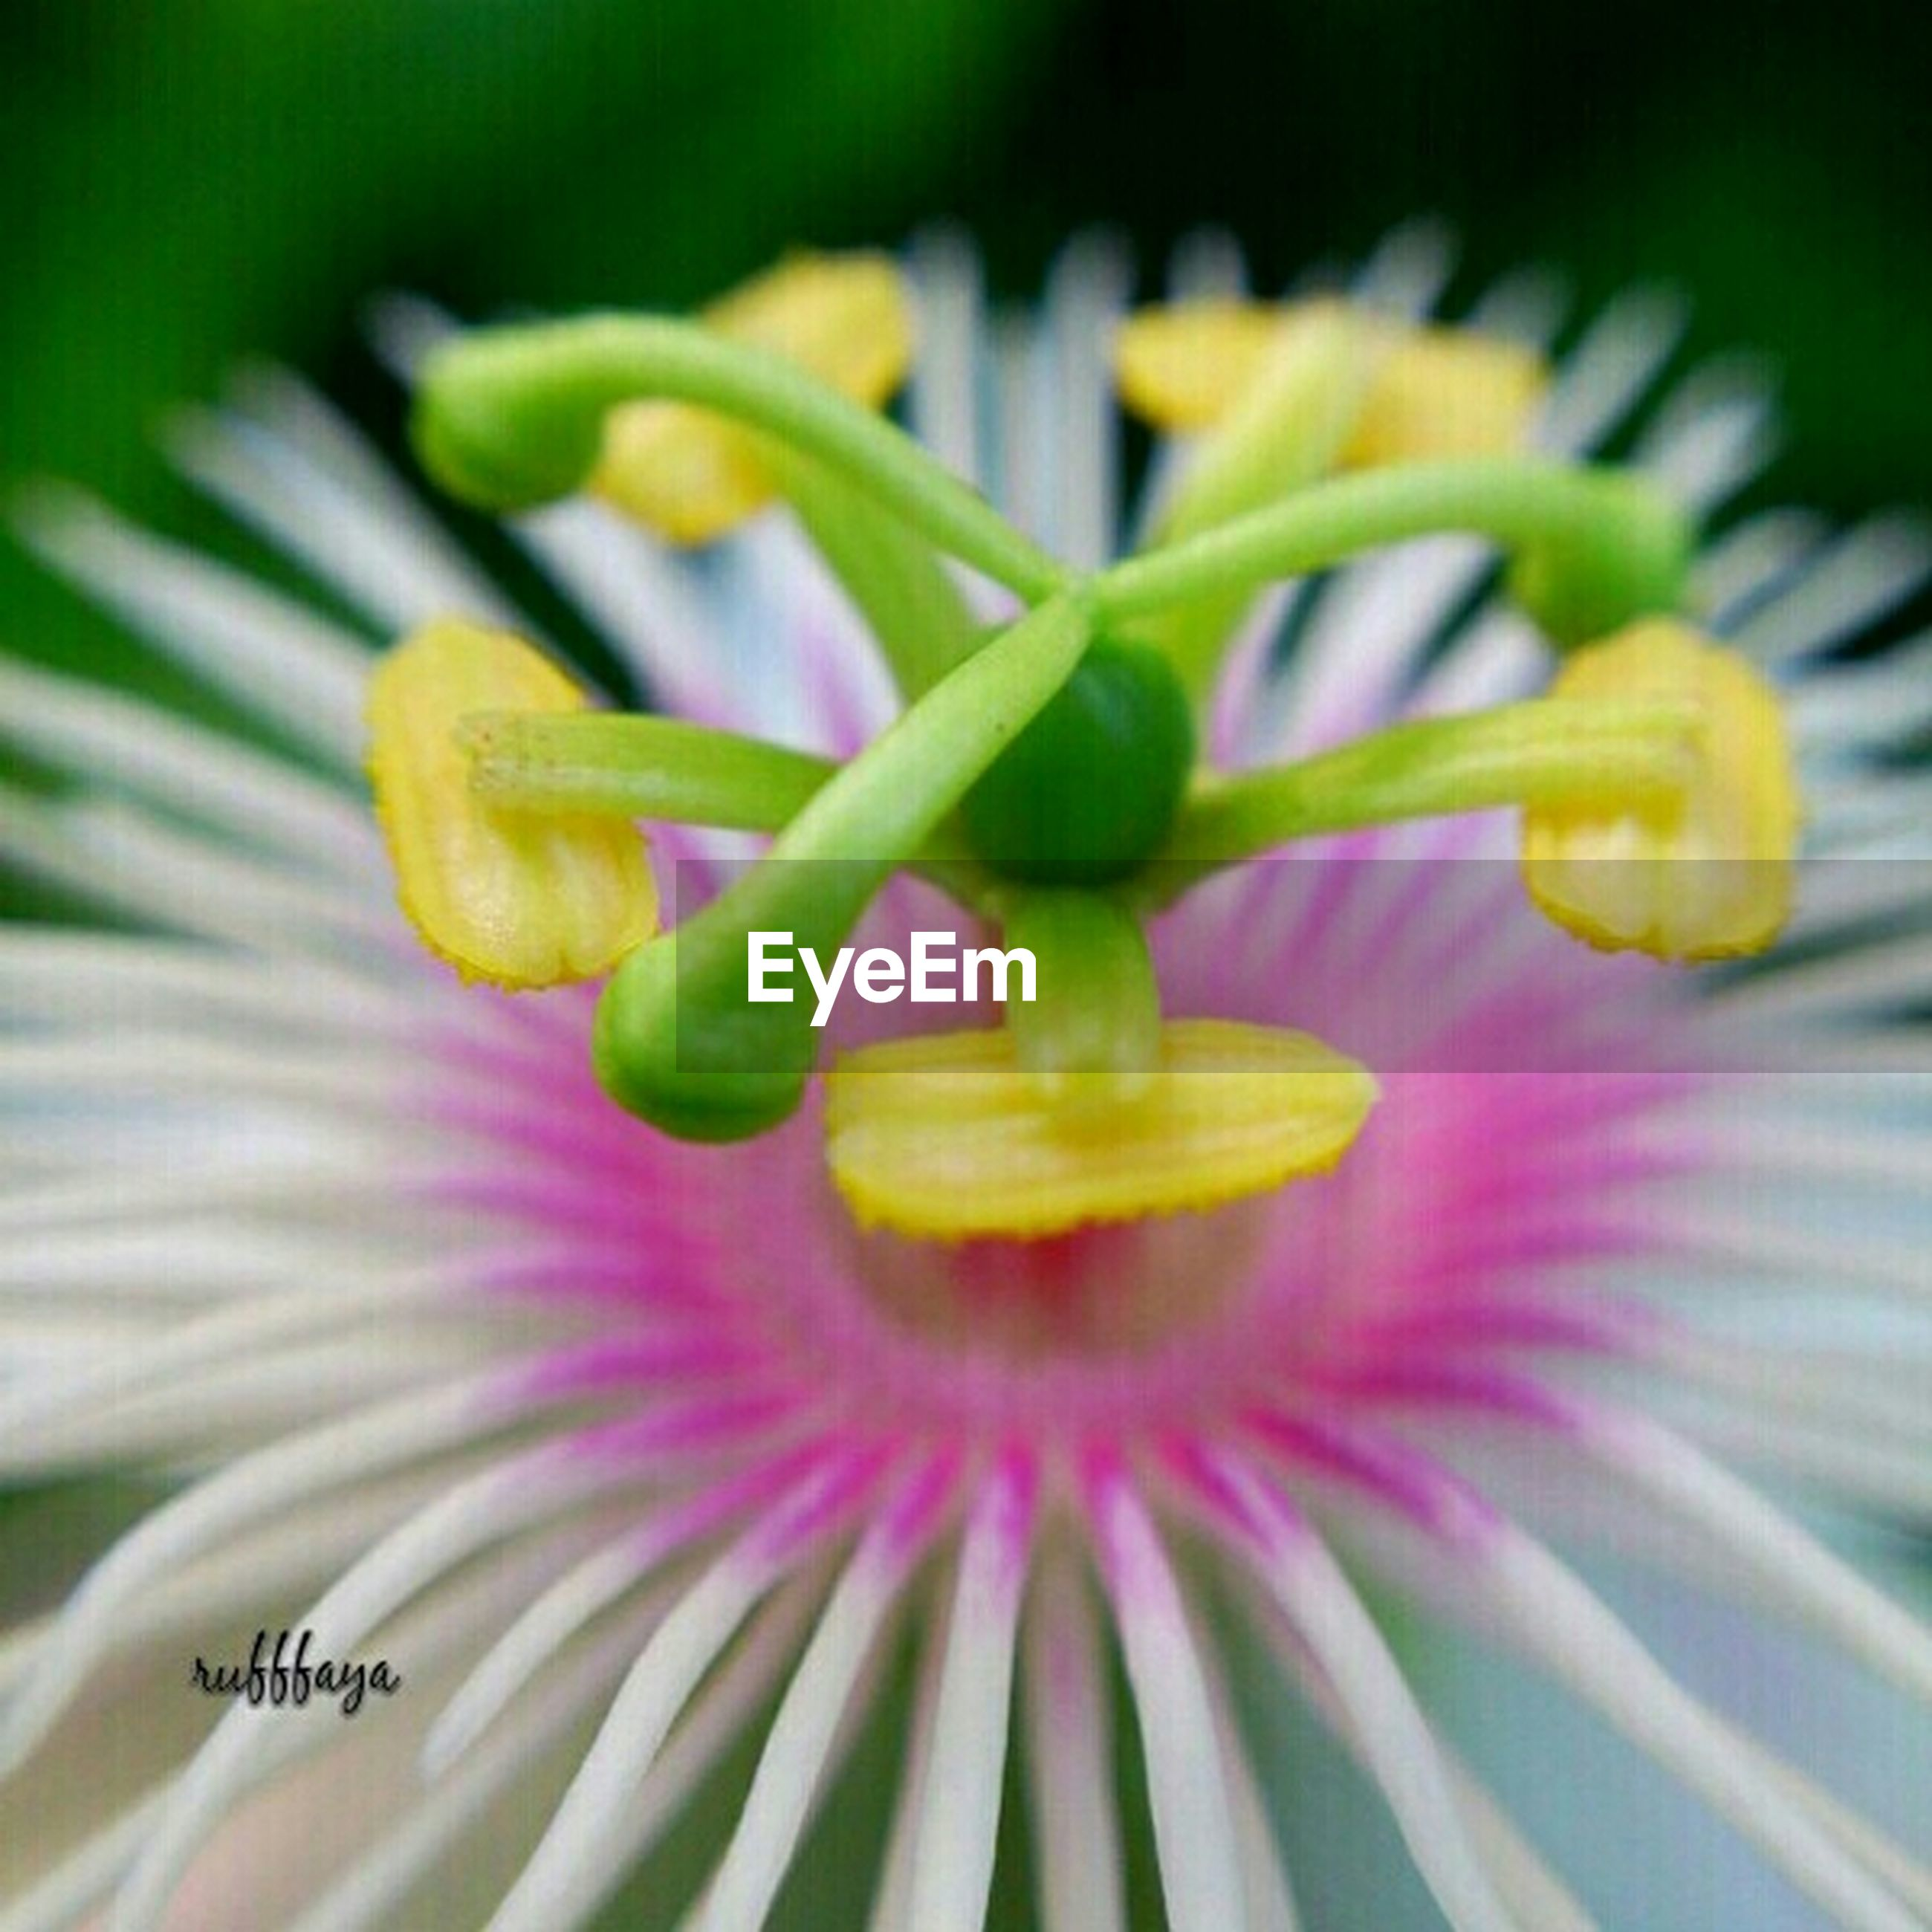 freshness, flower, close-up, yellow, green color, focus on foreground, petal, selective focus, growth, fragility, indoors, flower head, plant, nature, beauty in nature, no people, bud, stem, day, new life